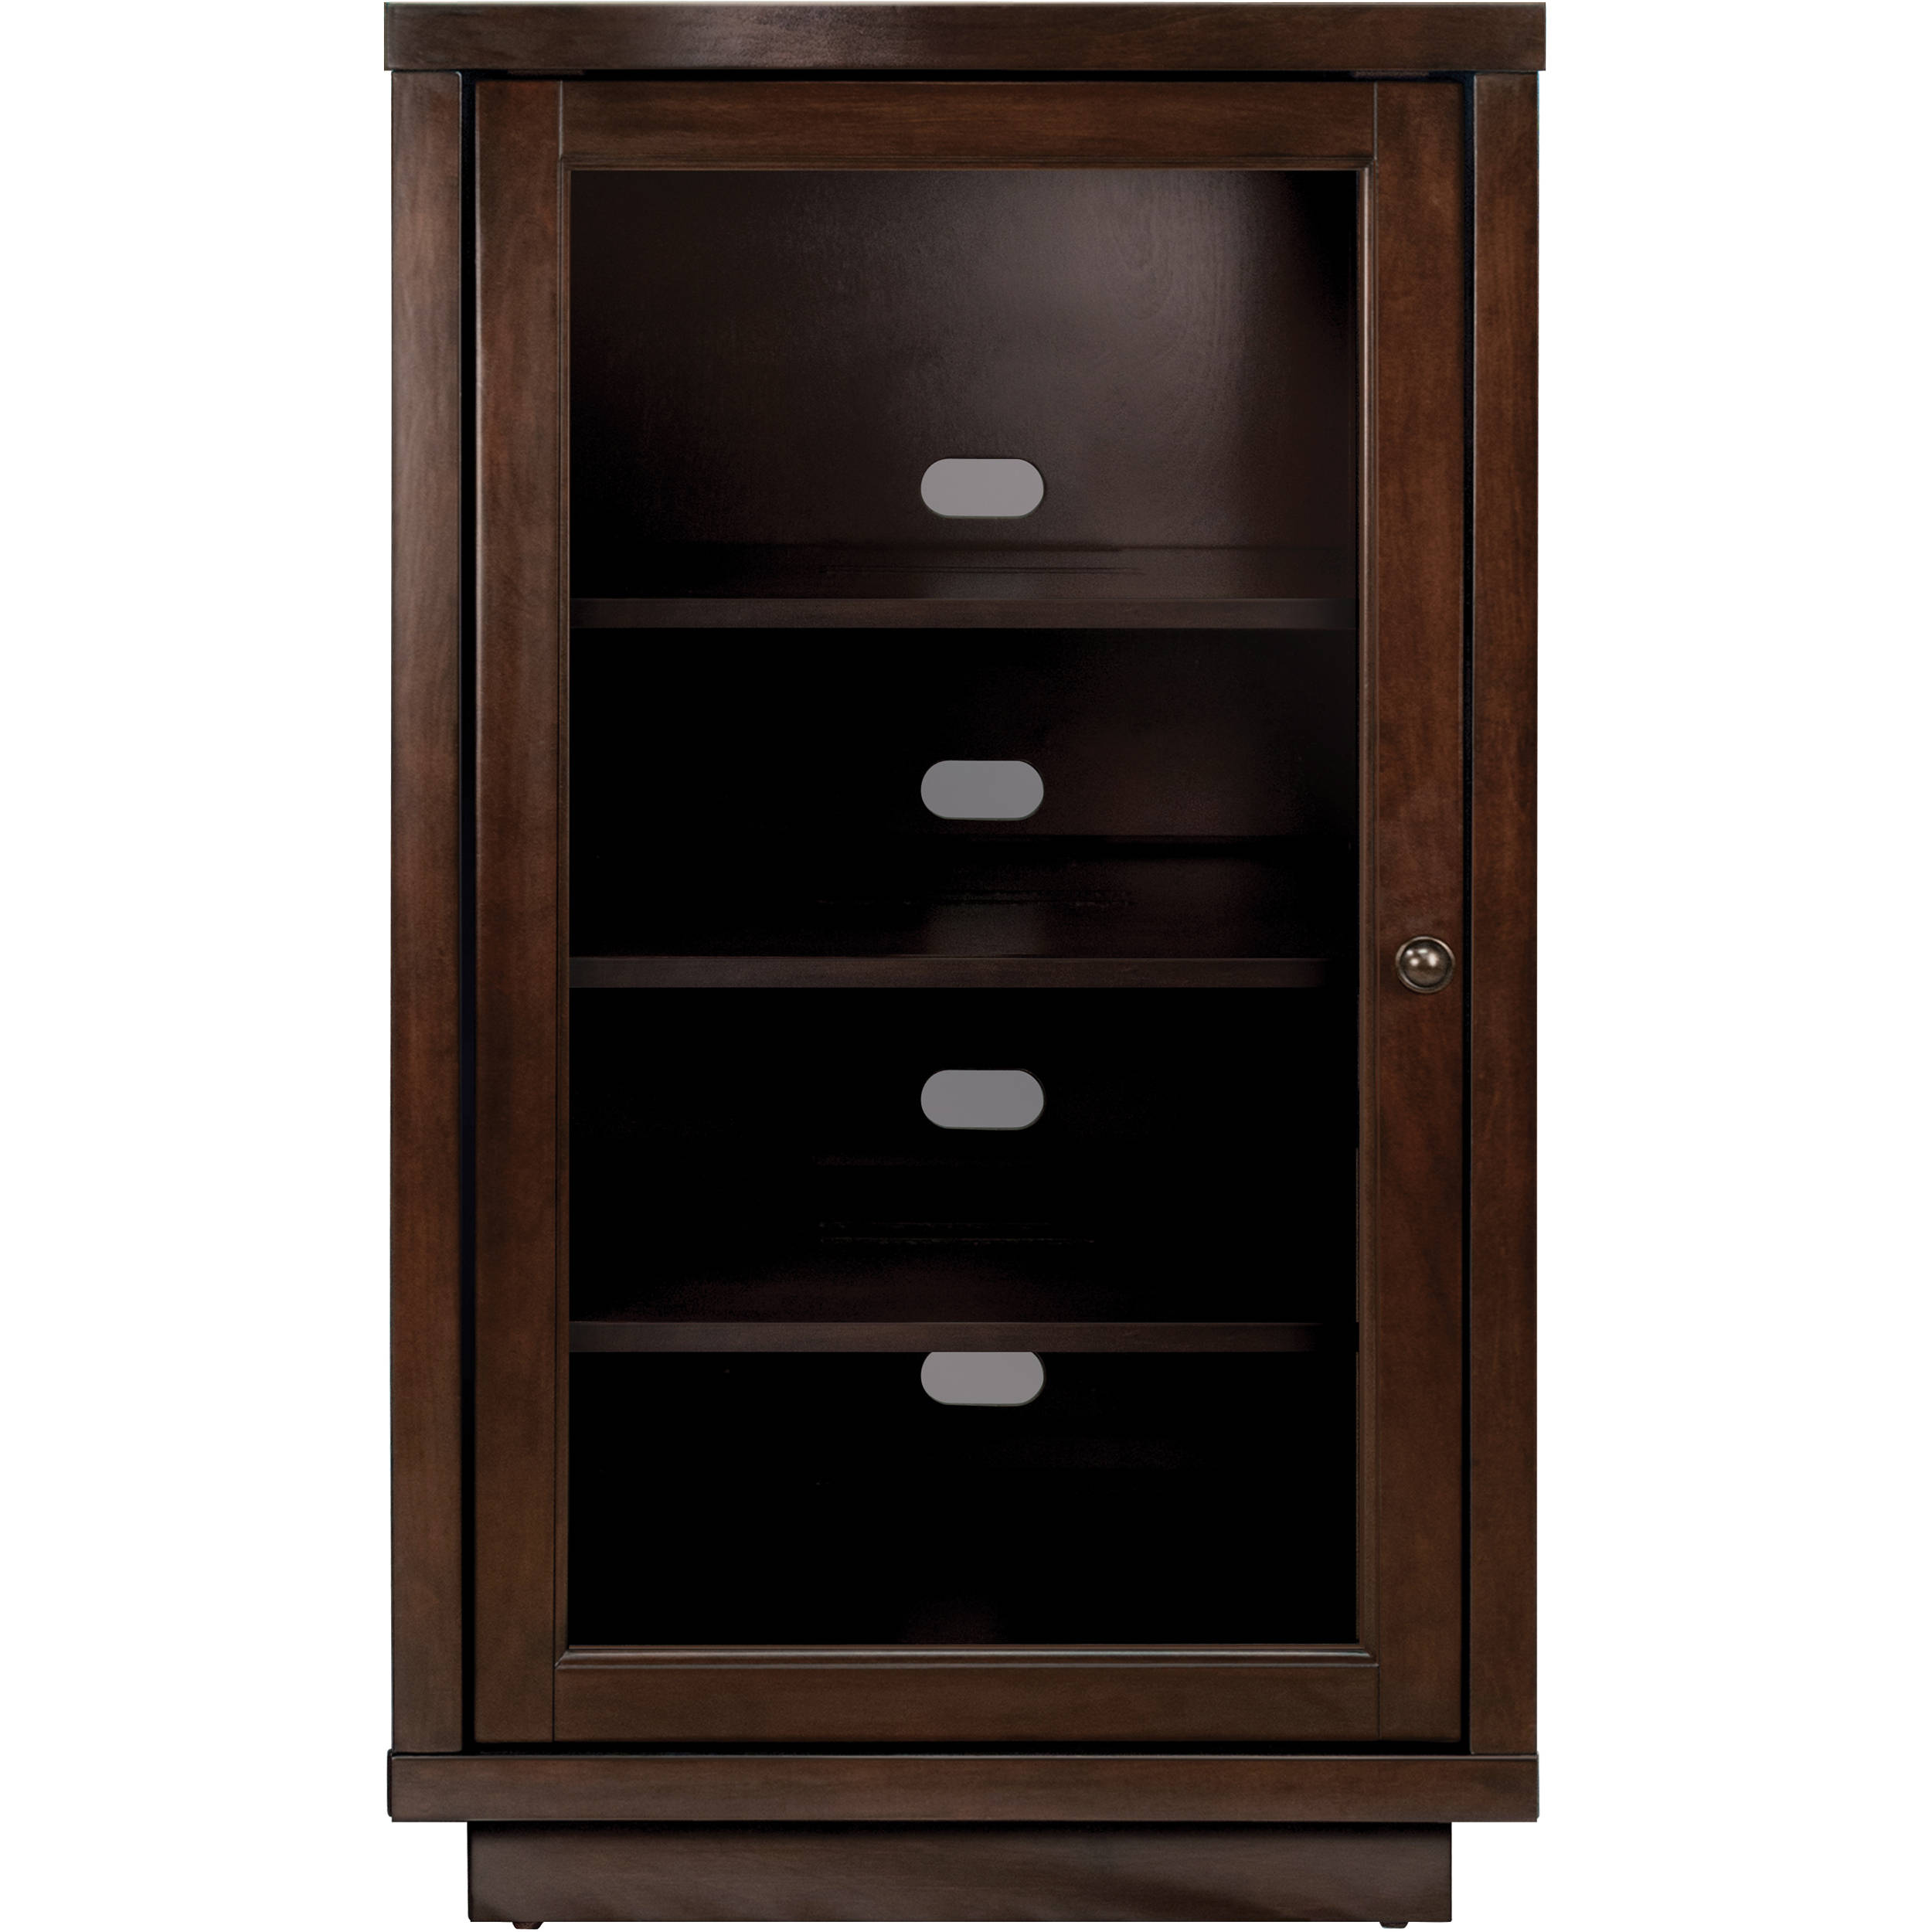 Bell'O ATC402 Wood Enclosed Audio/Video Component Cabinet